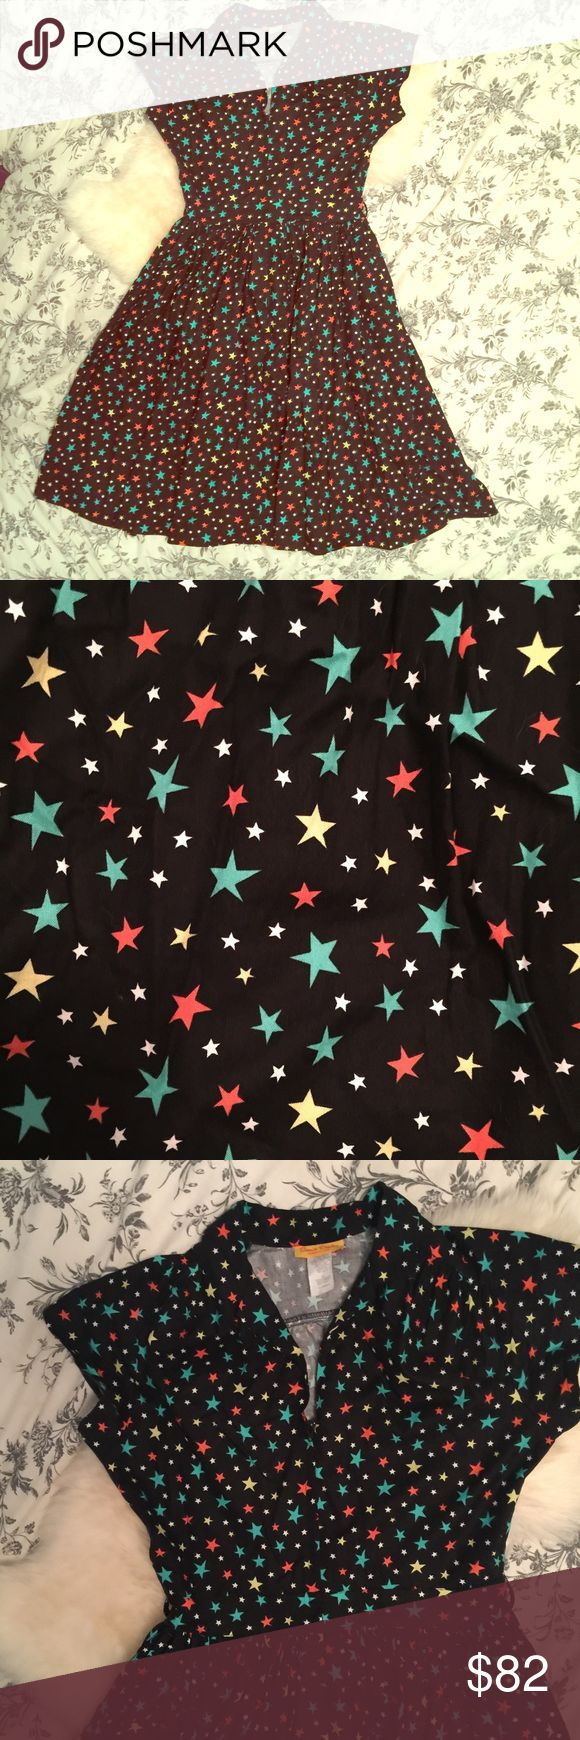 💫Bernie Dexter Star Collared Dress💫 Size medium Bernie Dexter star collared dress. Zip front with pretty colorful stars. Fit and flare midi length. Has belt loops but does not come with belt. Great condition, not ModCloth, just tagged for exposure. Open to reasonable offers. Xx Dresses Midi